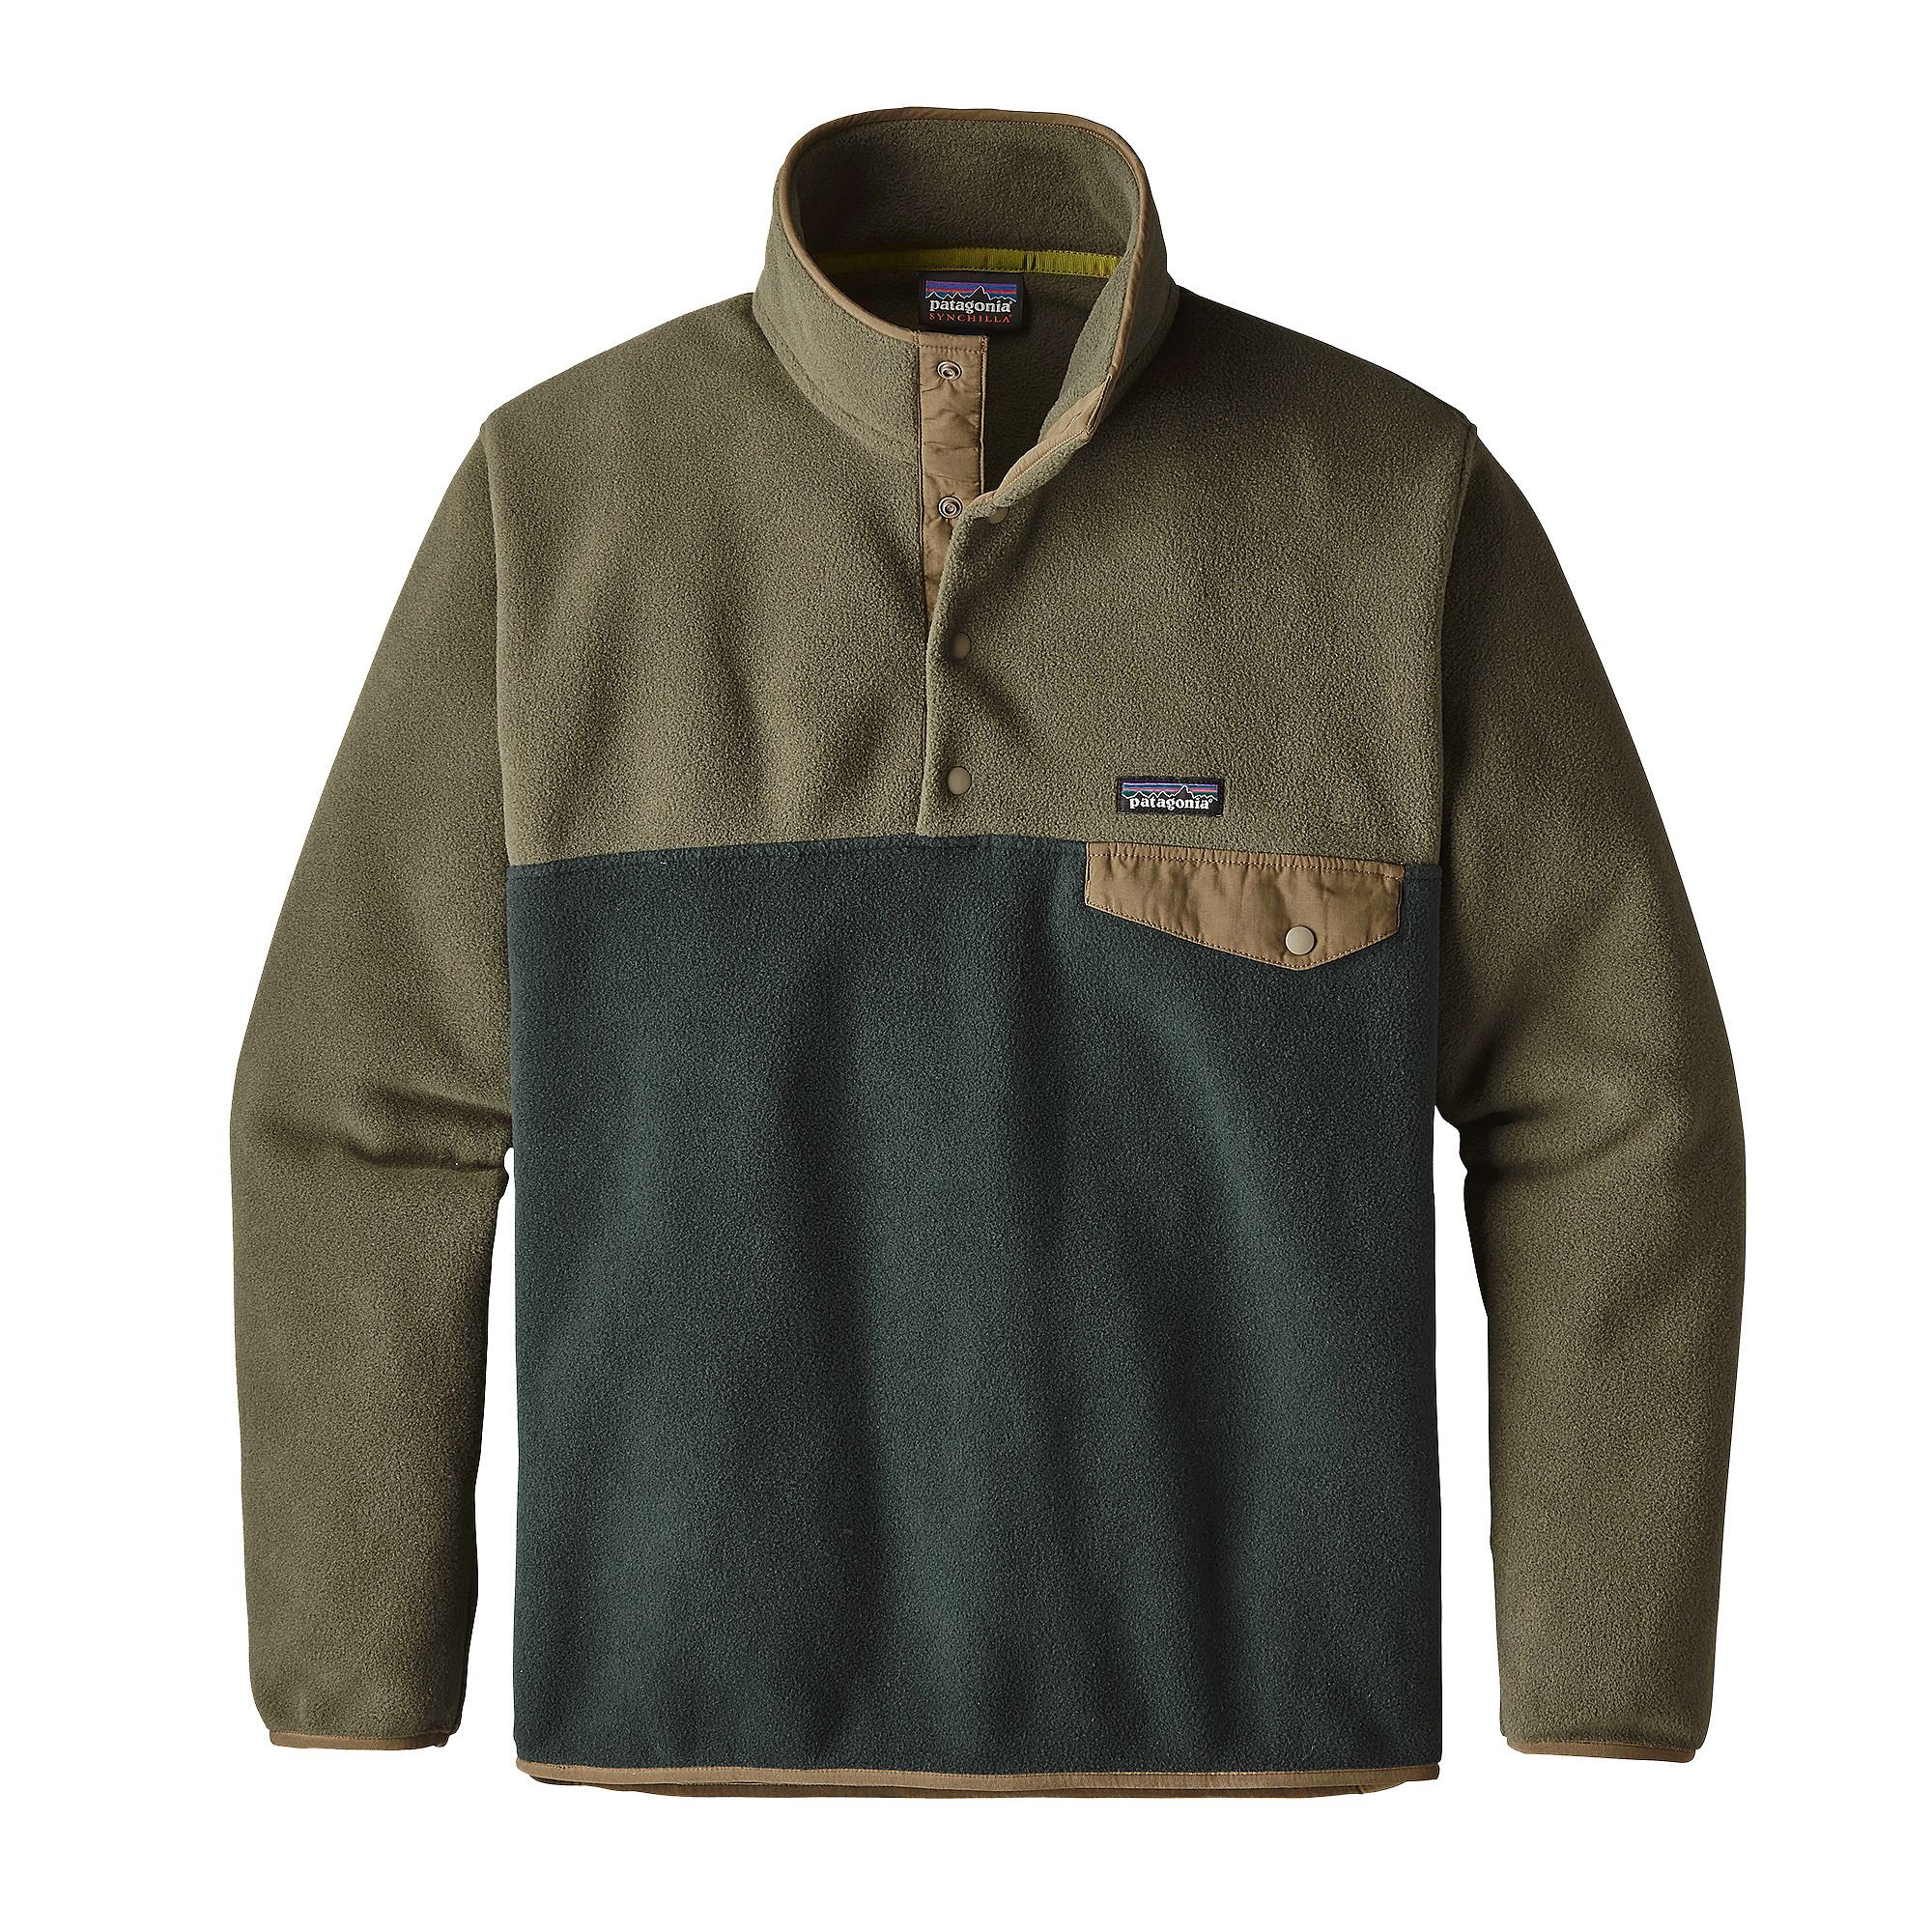 Patagonia Mens LW Synch Snap-T P/O, Industrial Green, S